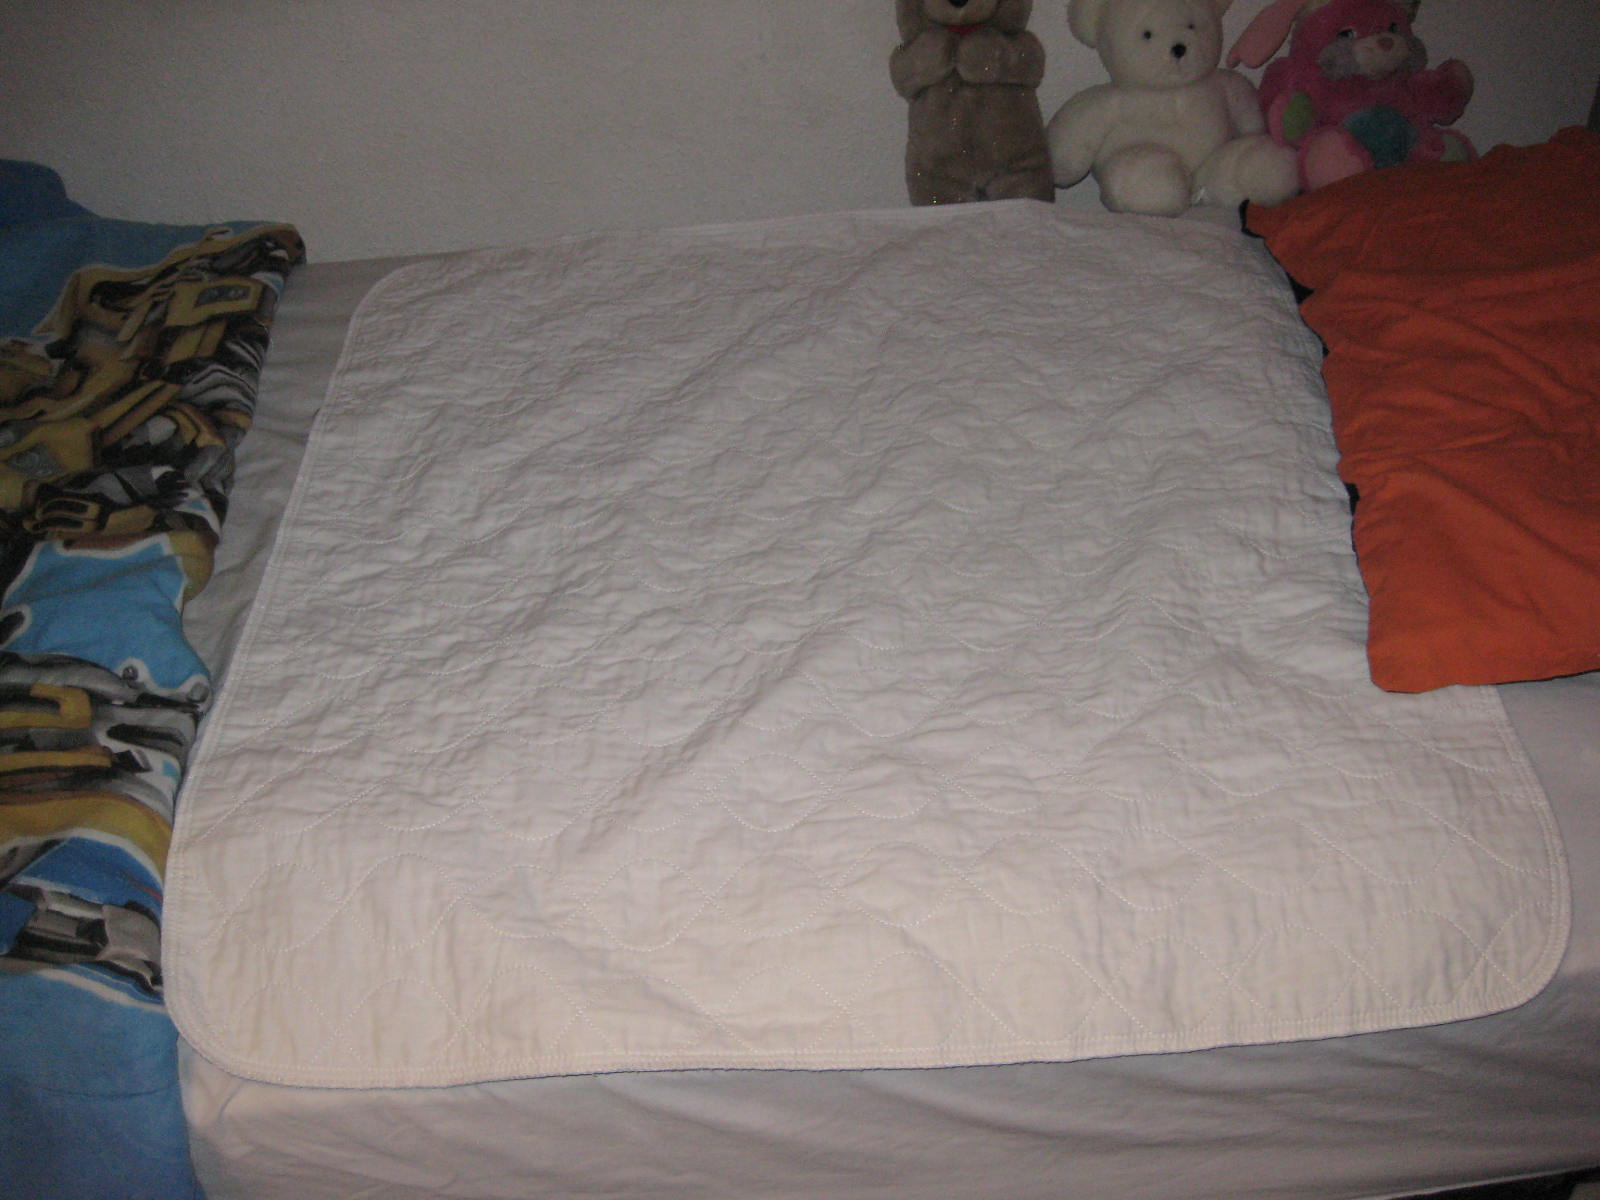 Bed Wetting Washable Bed Pad